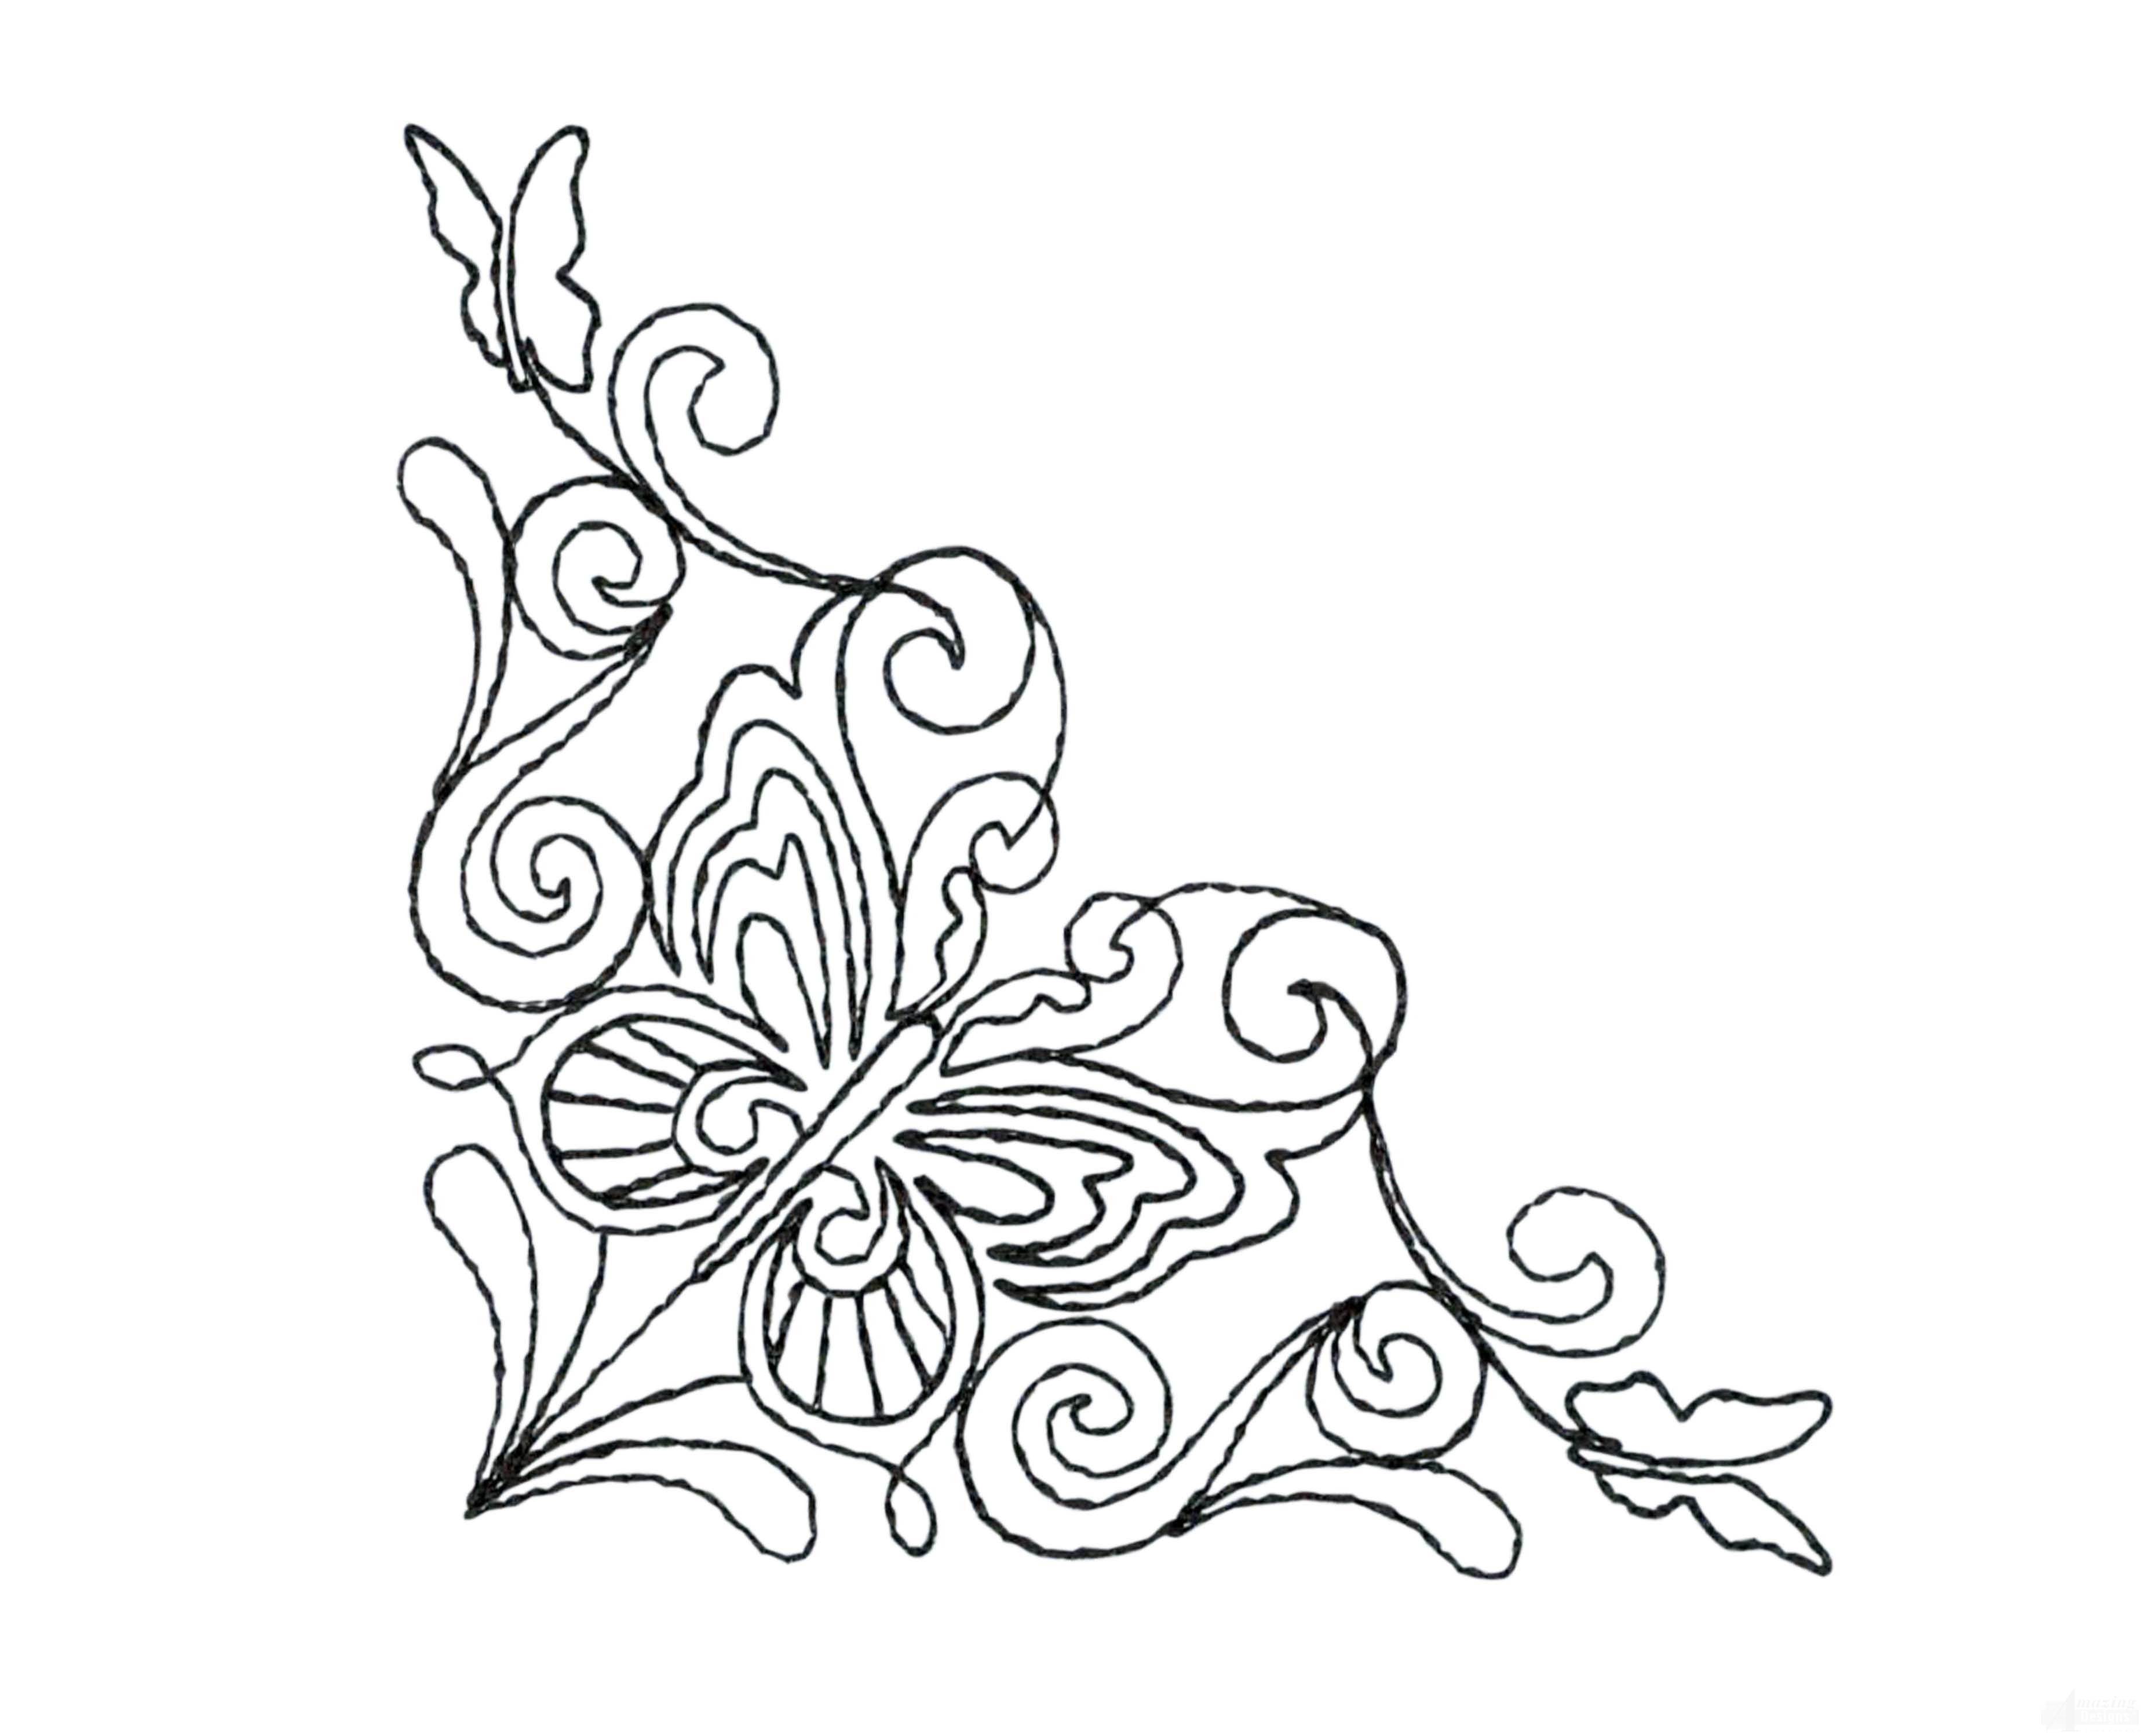 Quilting Outline Embroidery Designs ~ clie.info for .